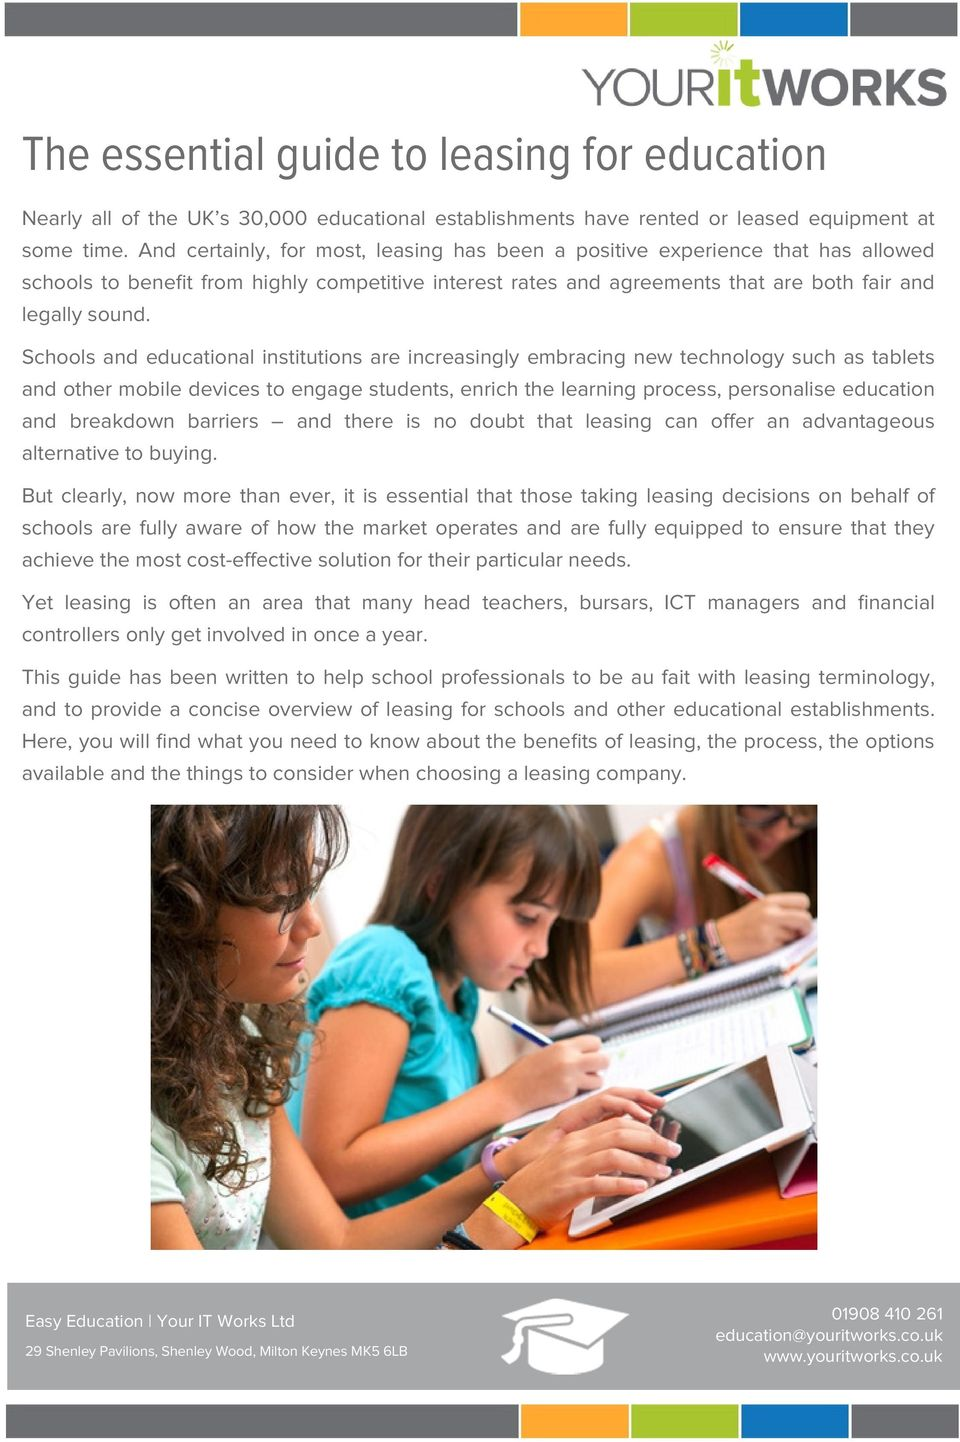 Schools and educational institutions are increasingly embracing new technology such as tablets and other mobile devices to engage students, enrich the learning process, personalise education and